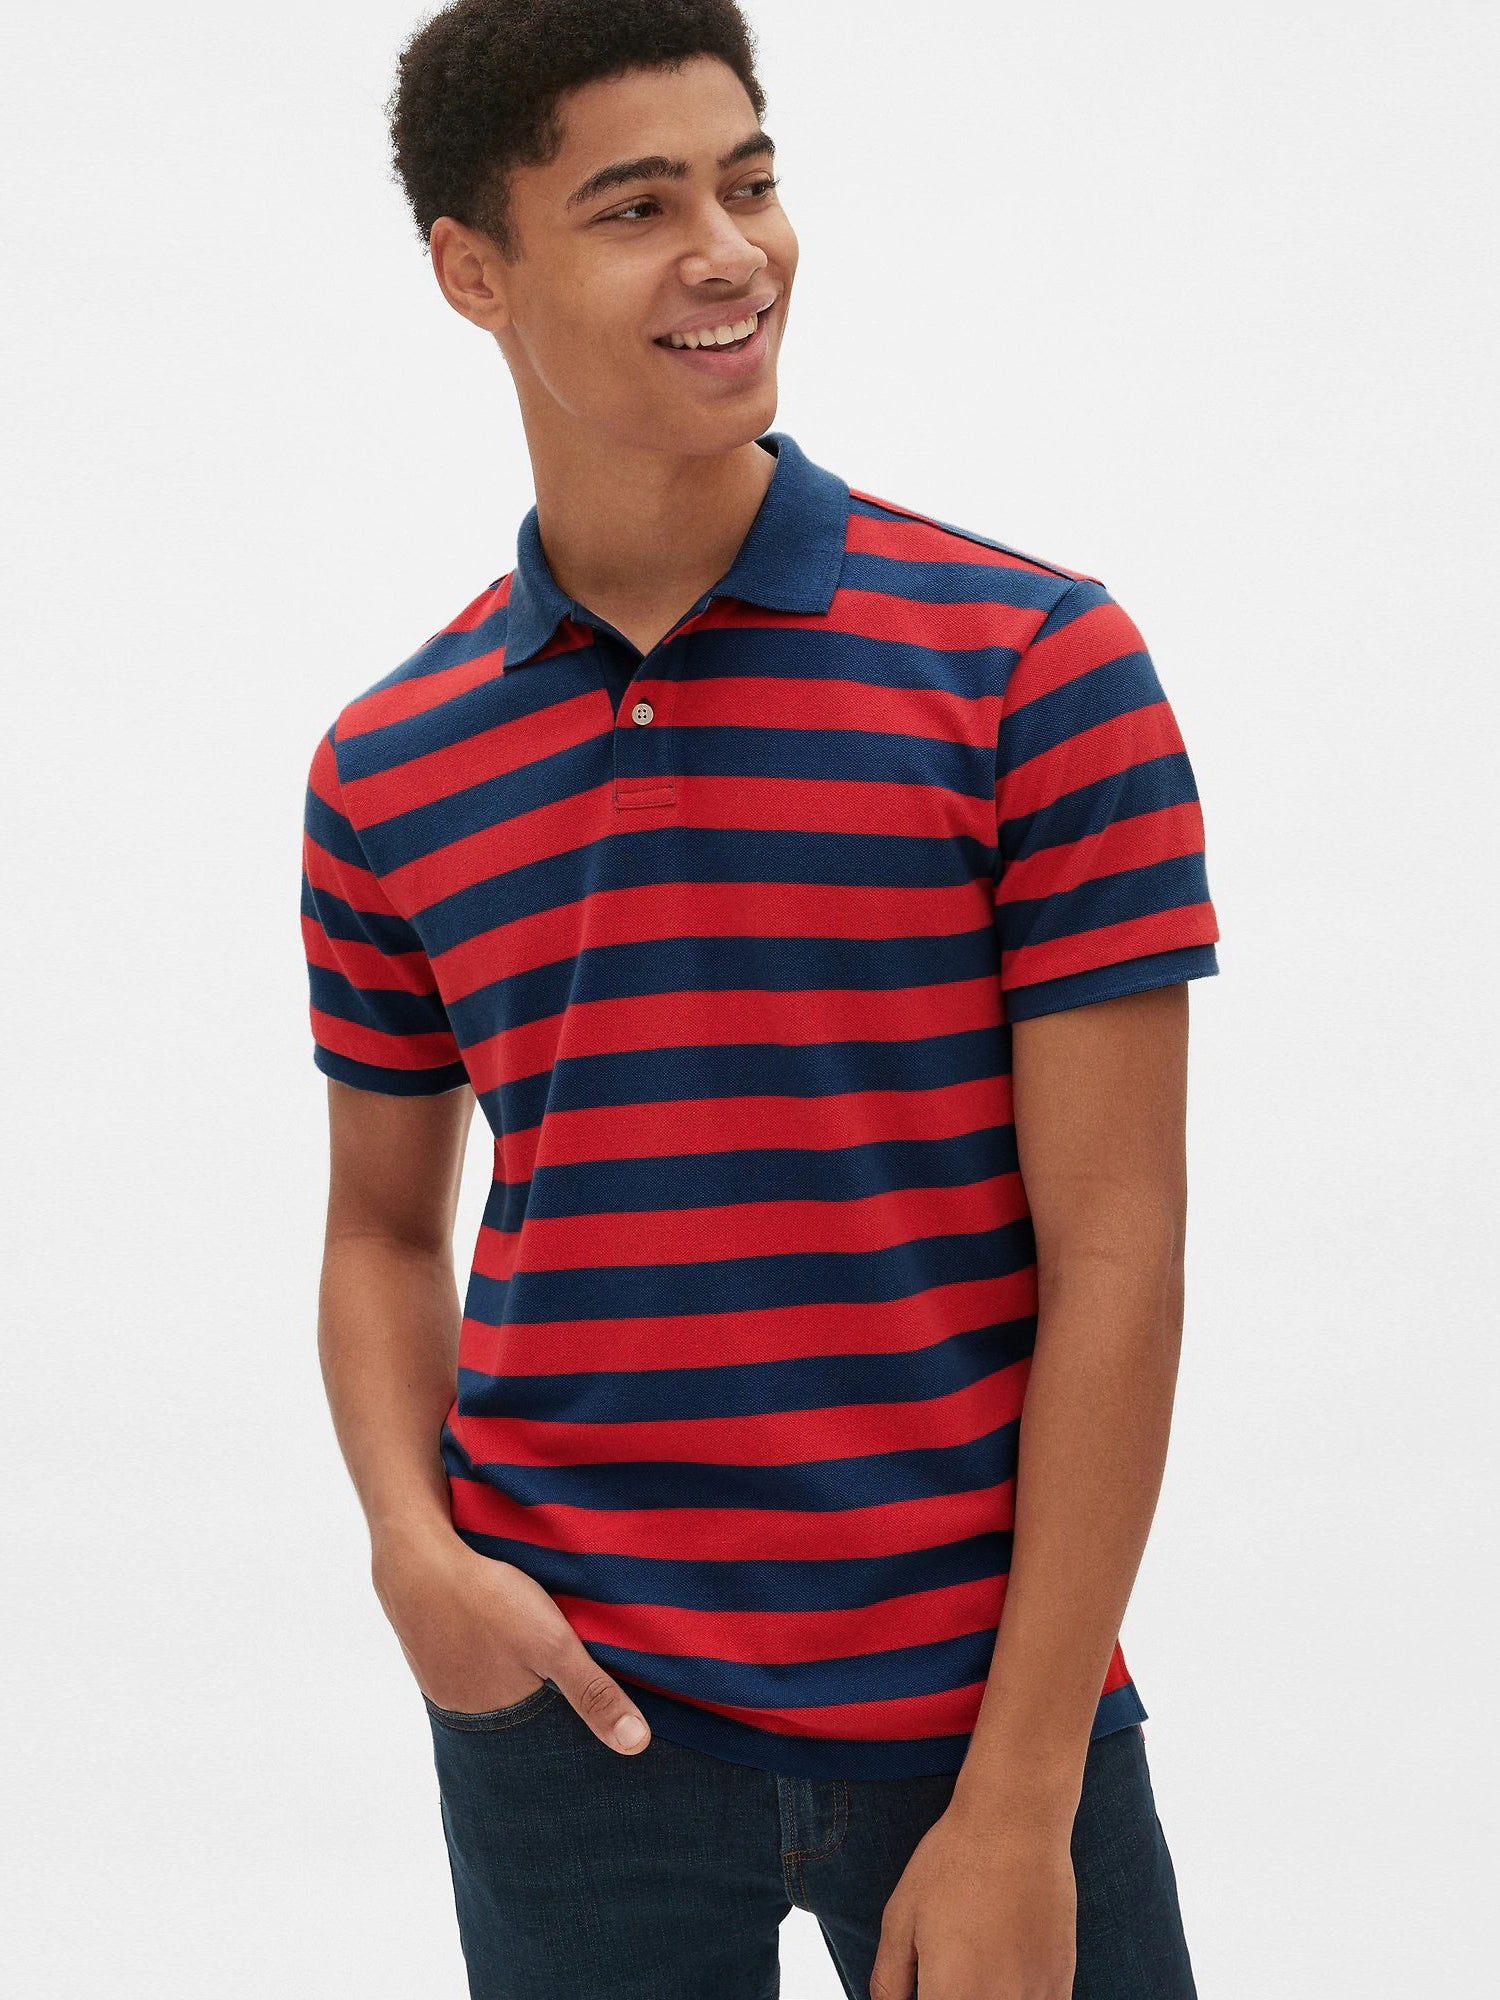 GAP Short Sleeve P.Q Polo Shirt For Men-Blue & Red Striper-NA8370